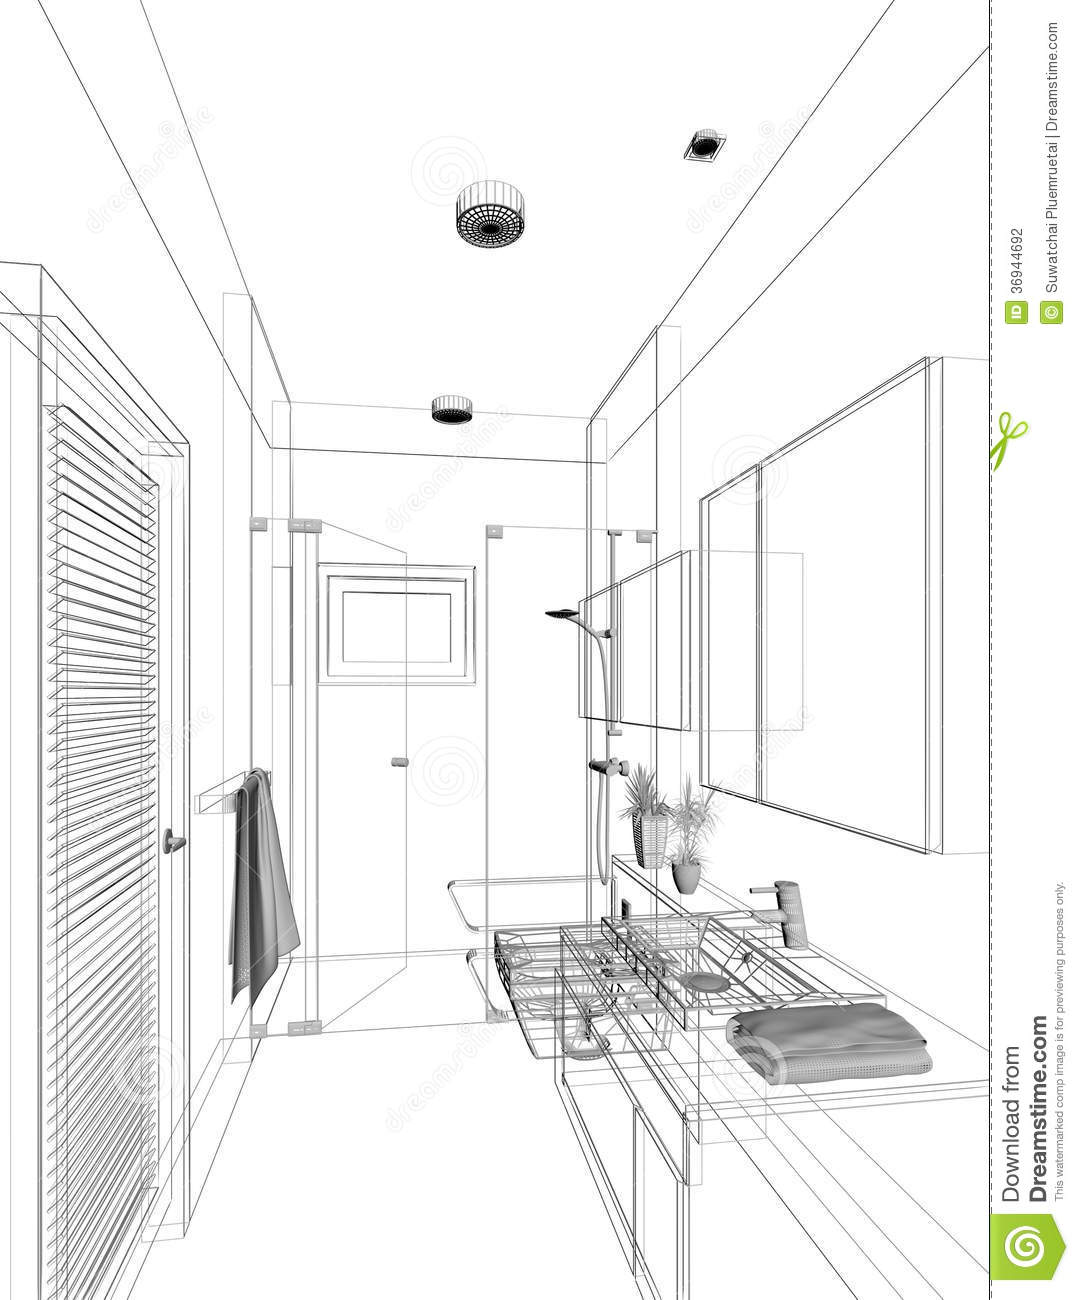 Sketch Design Of Interior Bathroom Stock Illustration Image 36944692